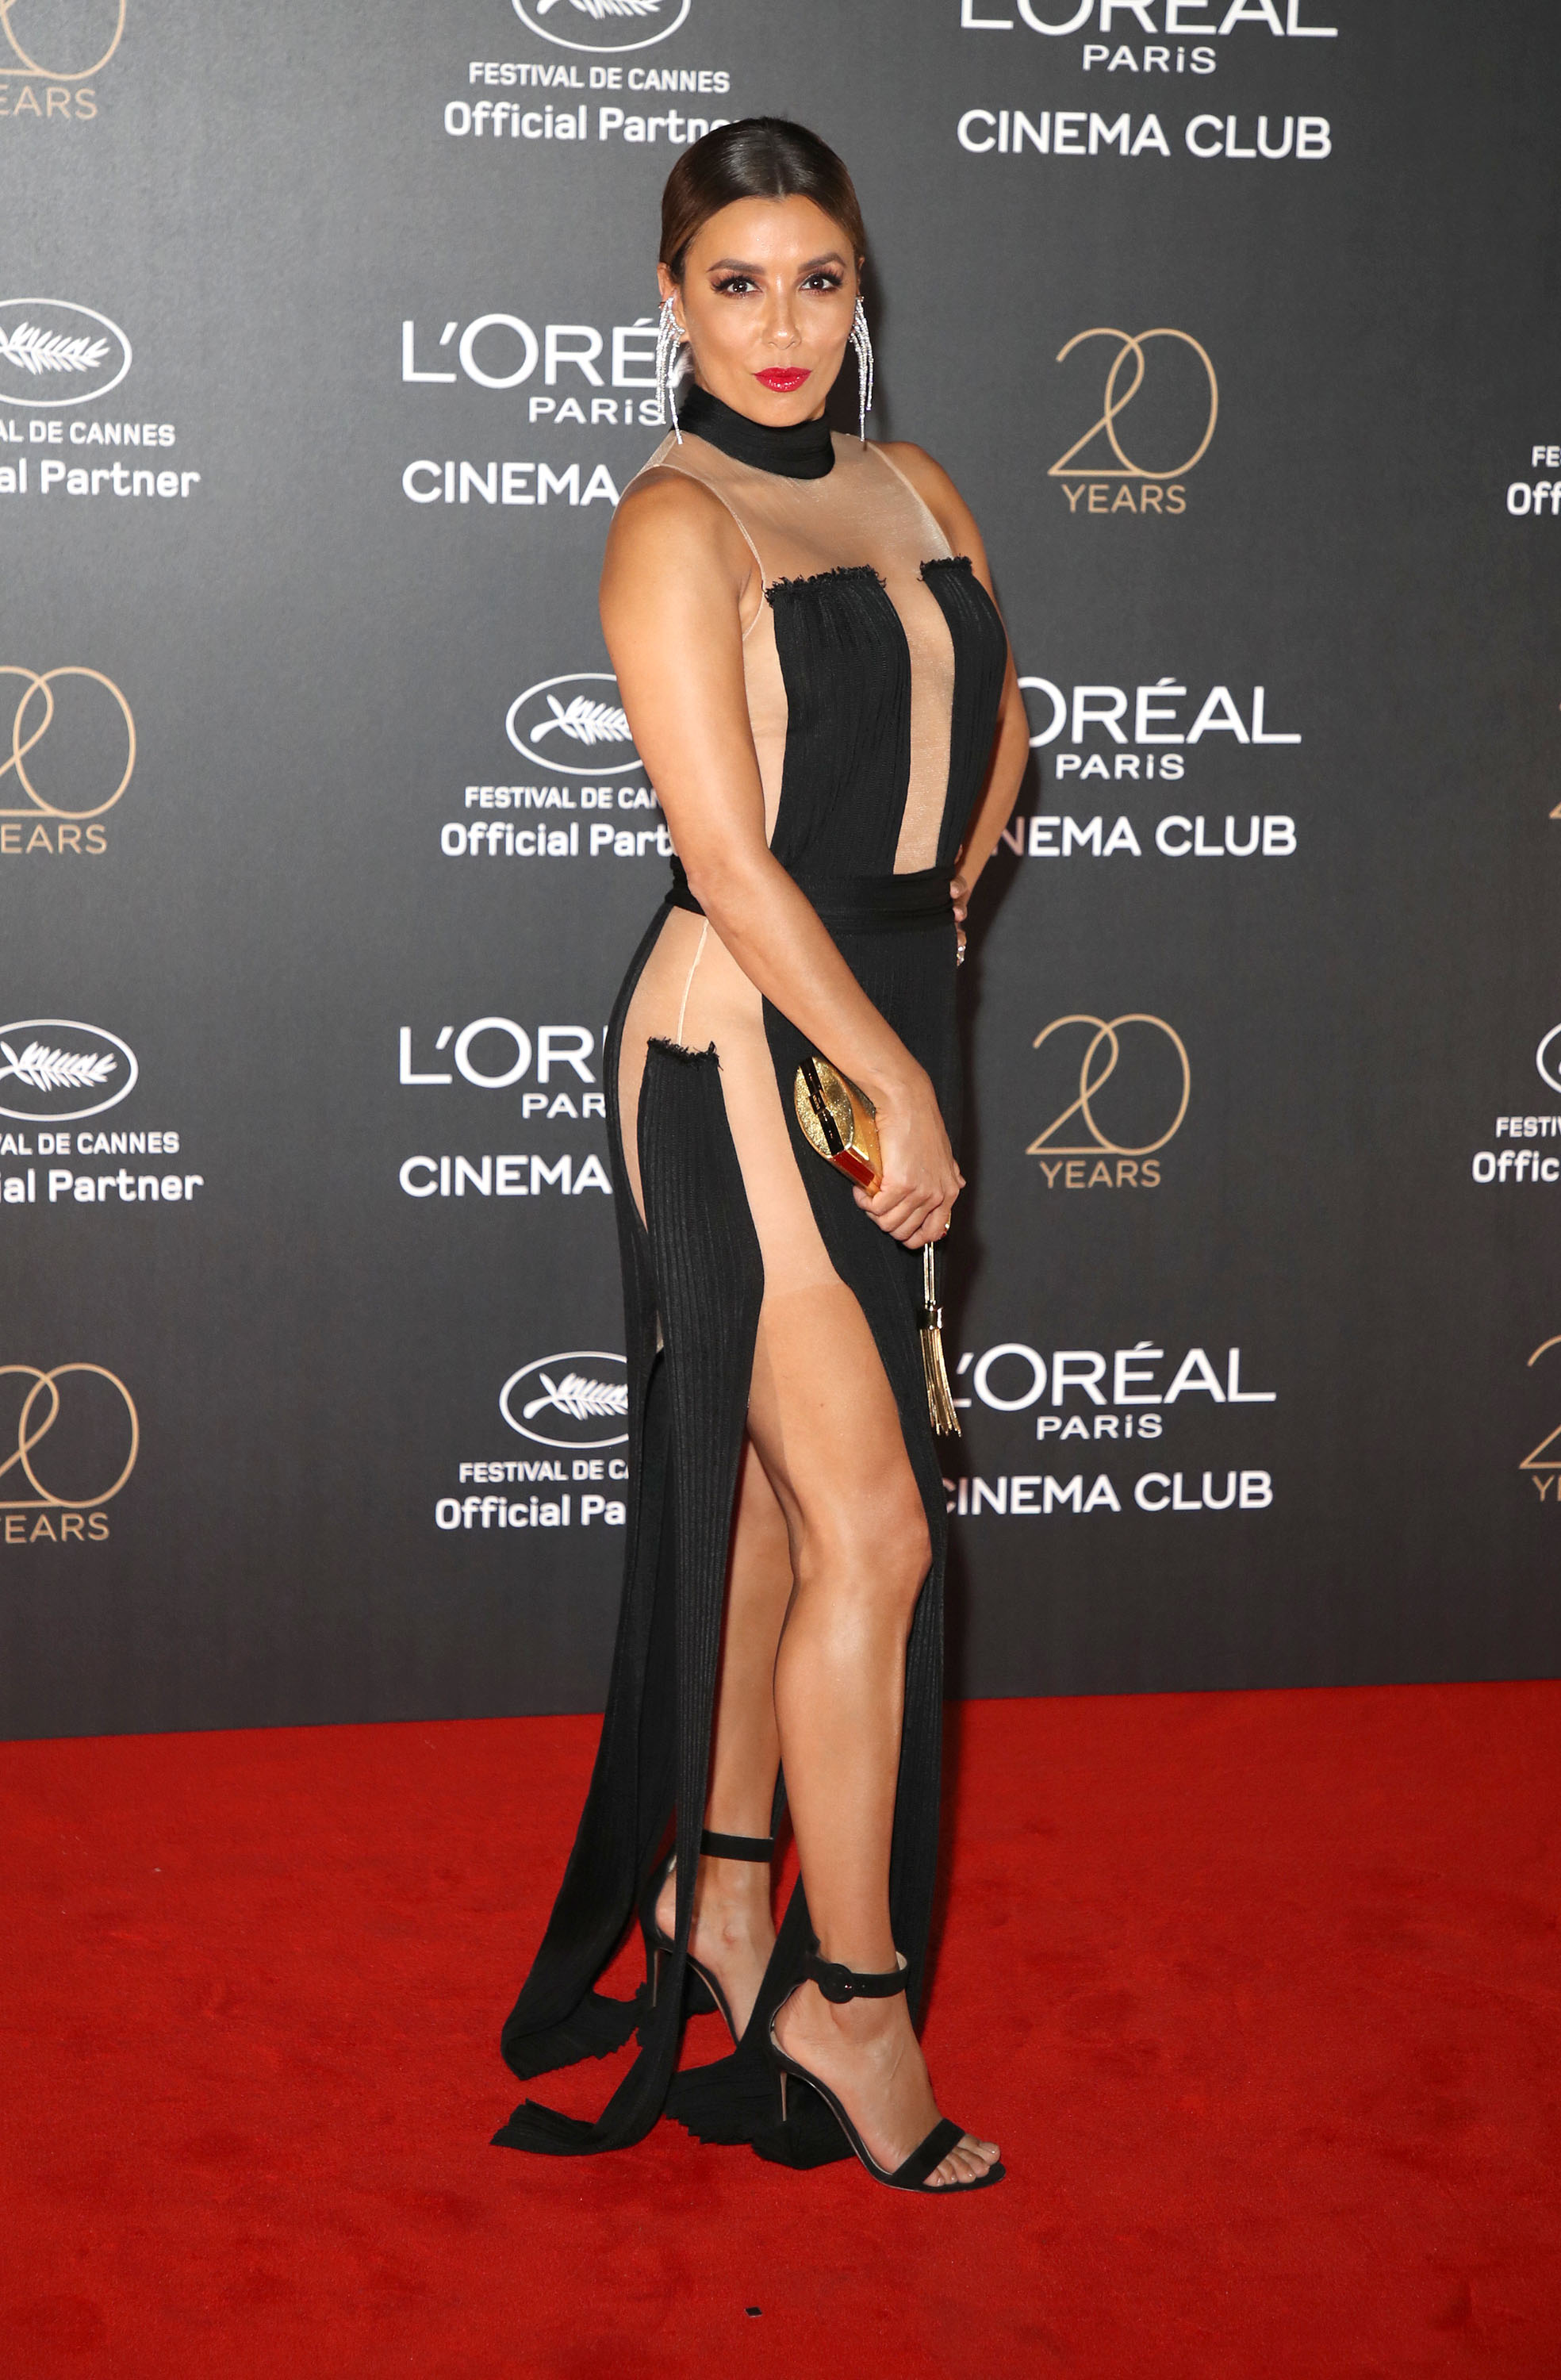 Gala 20th Birthday Of L'Oreal In Cannes - The 70th Annual Cannes Film Festival